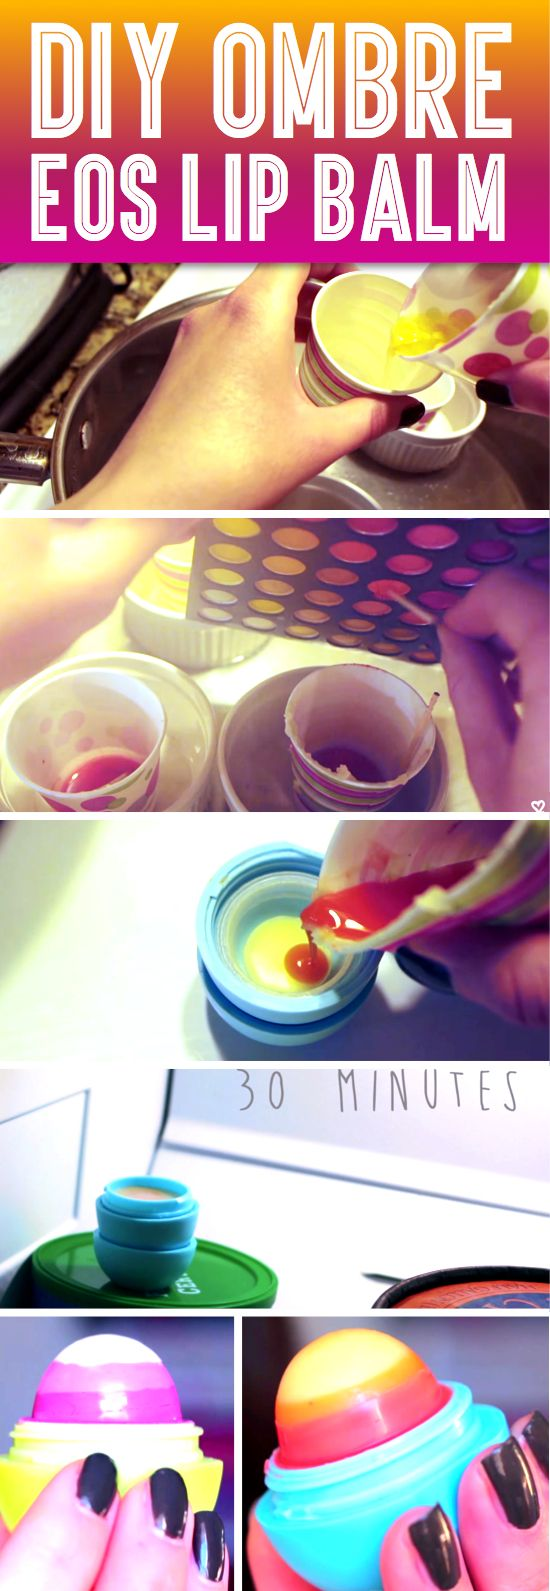 Easy DIY Ombre EOS Lip Balm!